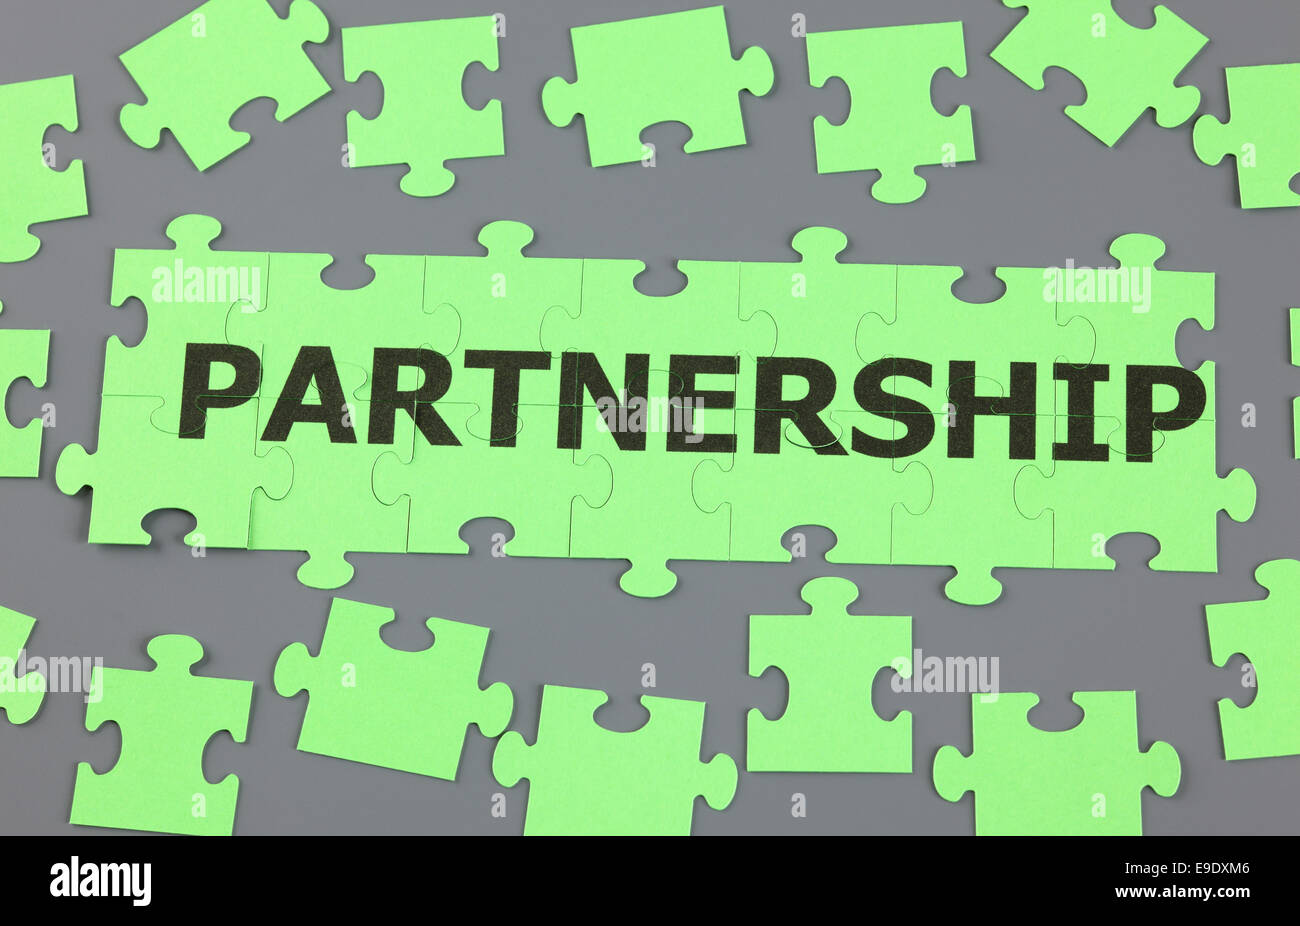 Jigsaw puzzle with word 'Partnership'. - Stock Image